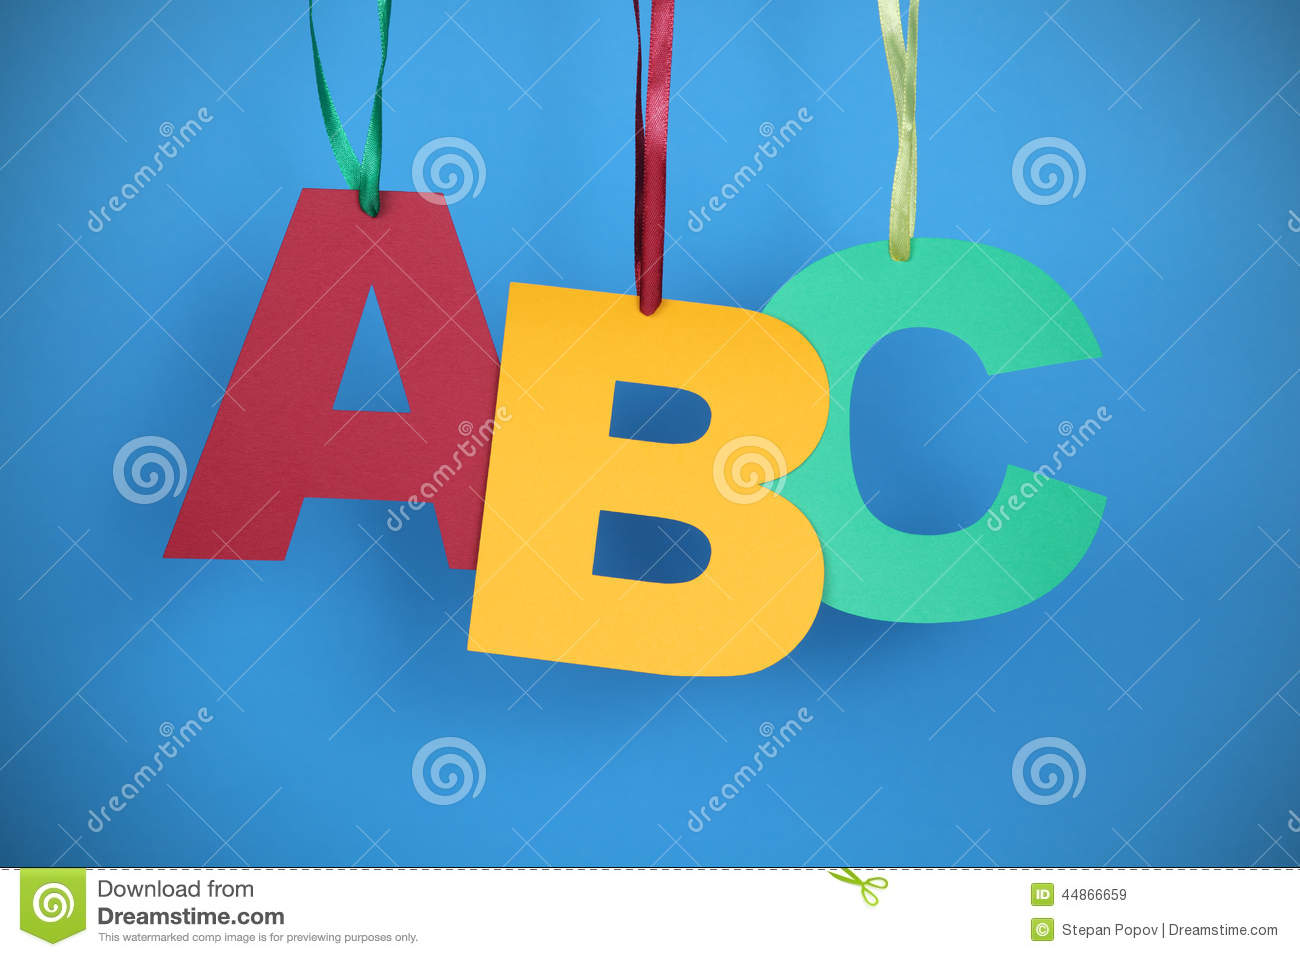 time driven abc essay View essay - abc models with time-driven abcdocx from accy 670 at northern illinois university running head: conventional abc models and time-driven abc models comparing the activity-based costing.